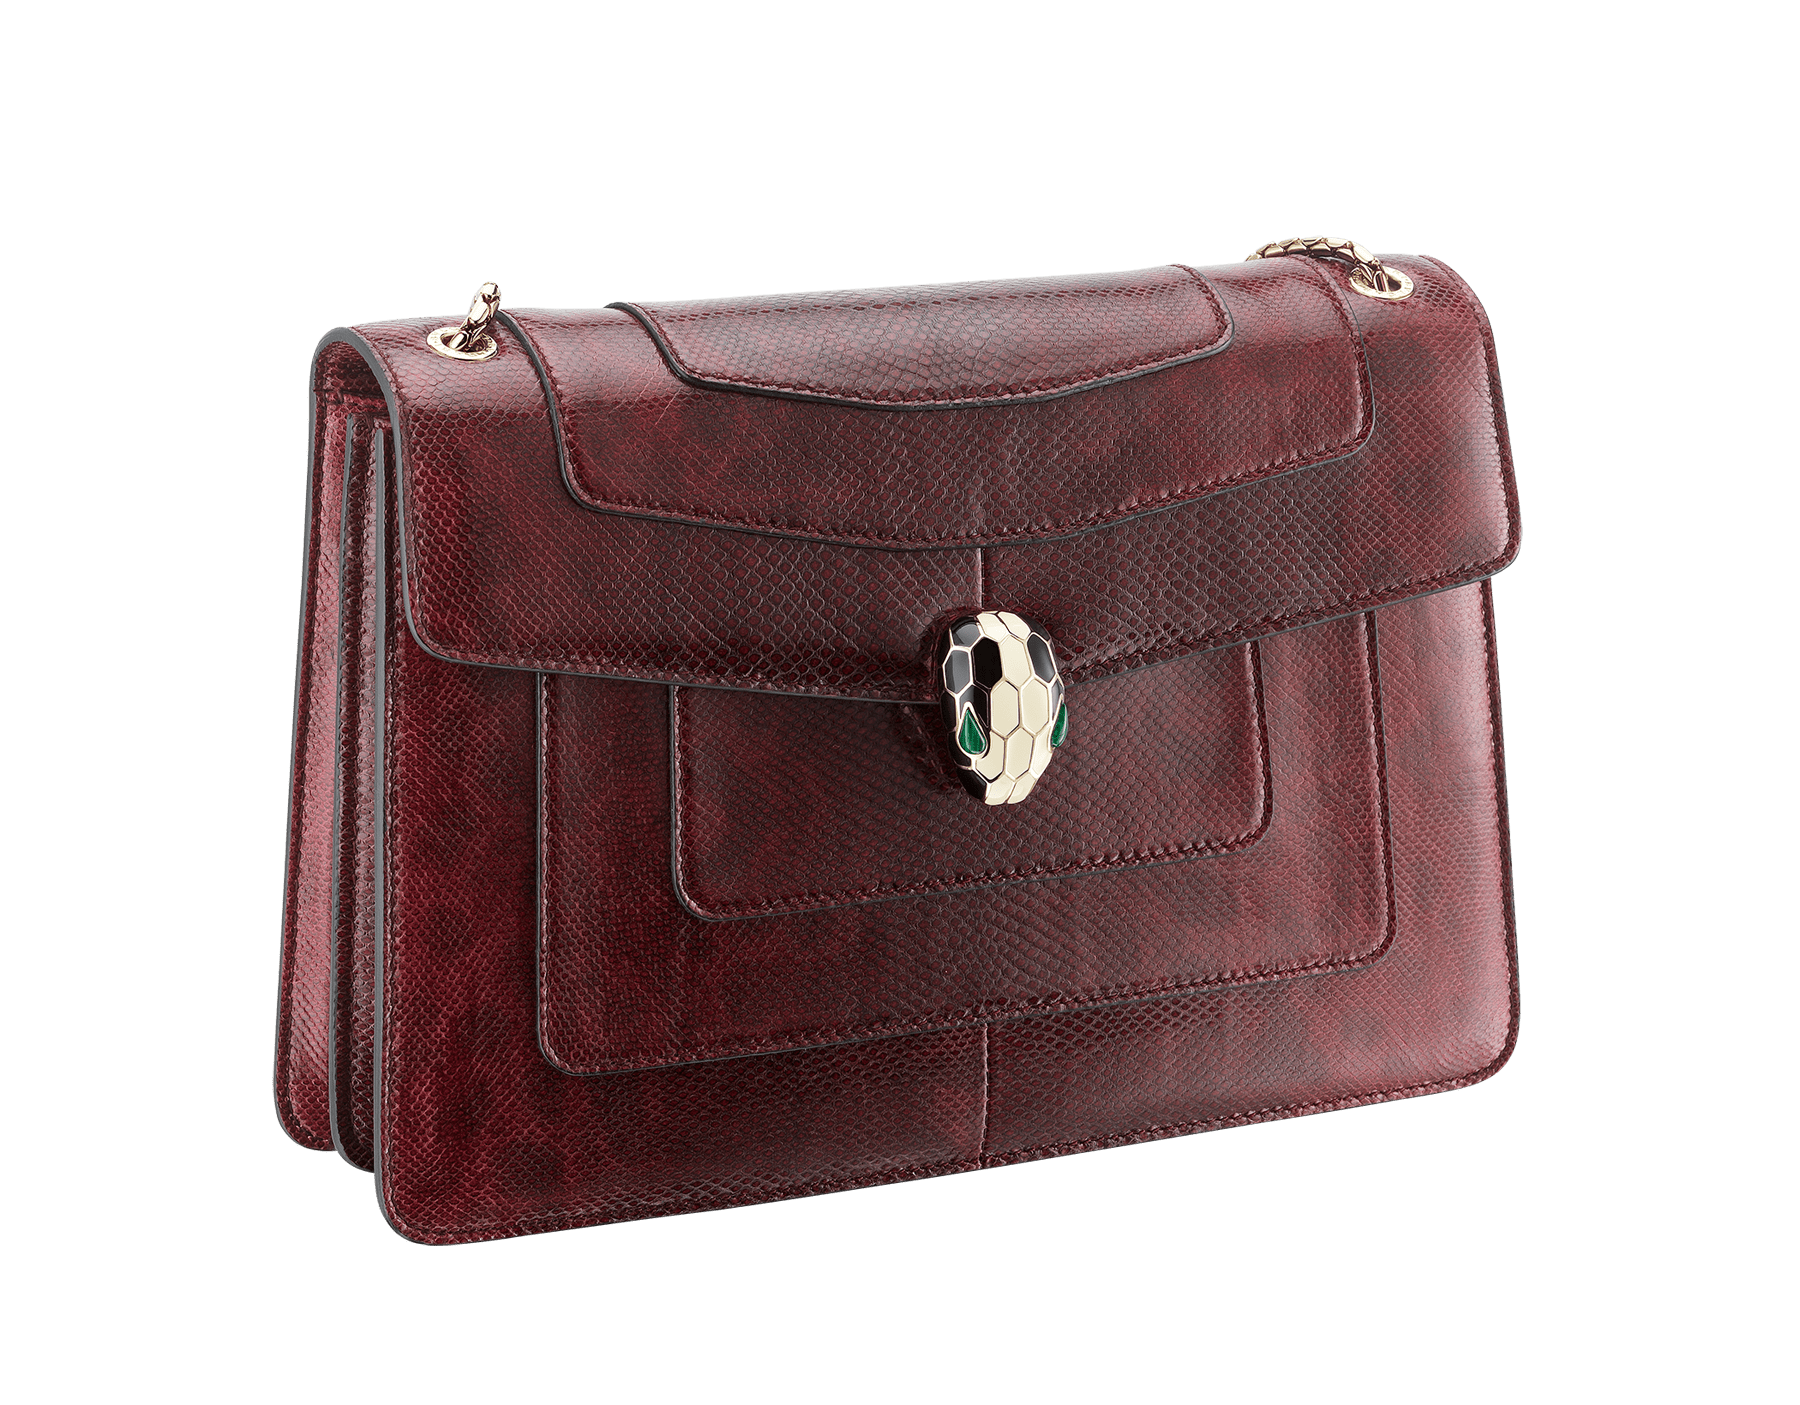 Flap cover bag Serpenti Forever in roman garnet shiny karung skin. Brass light gold plated tempting snake head closure in shiny black and white enamel, with eyes in green malachite. 286199 image 2